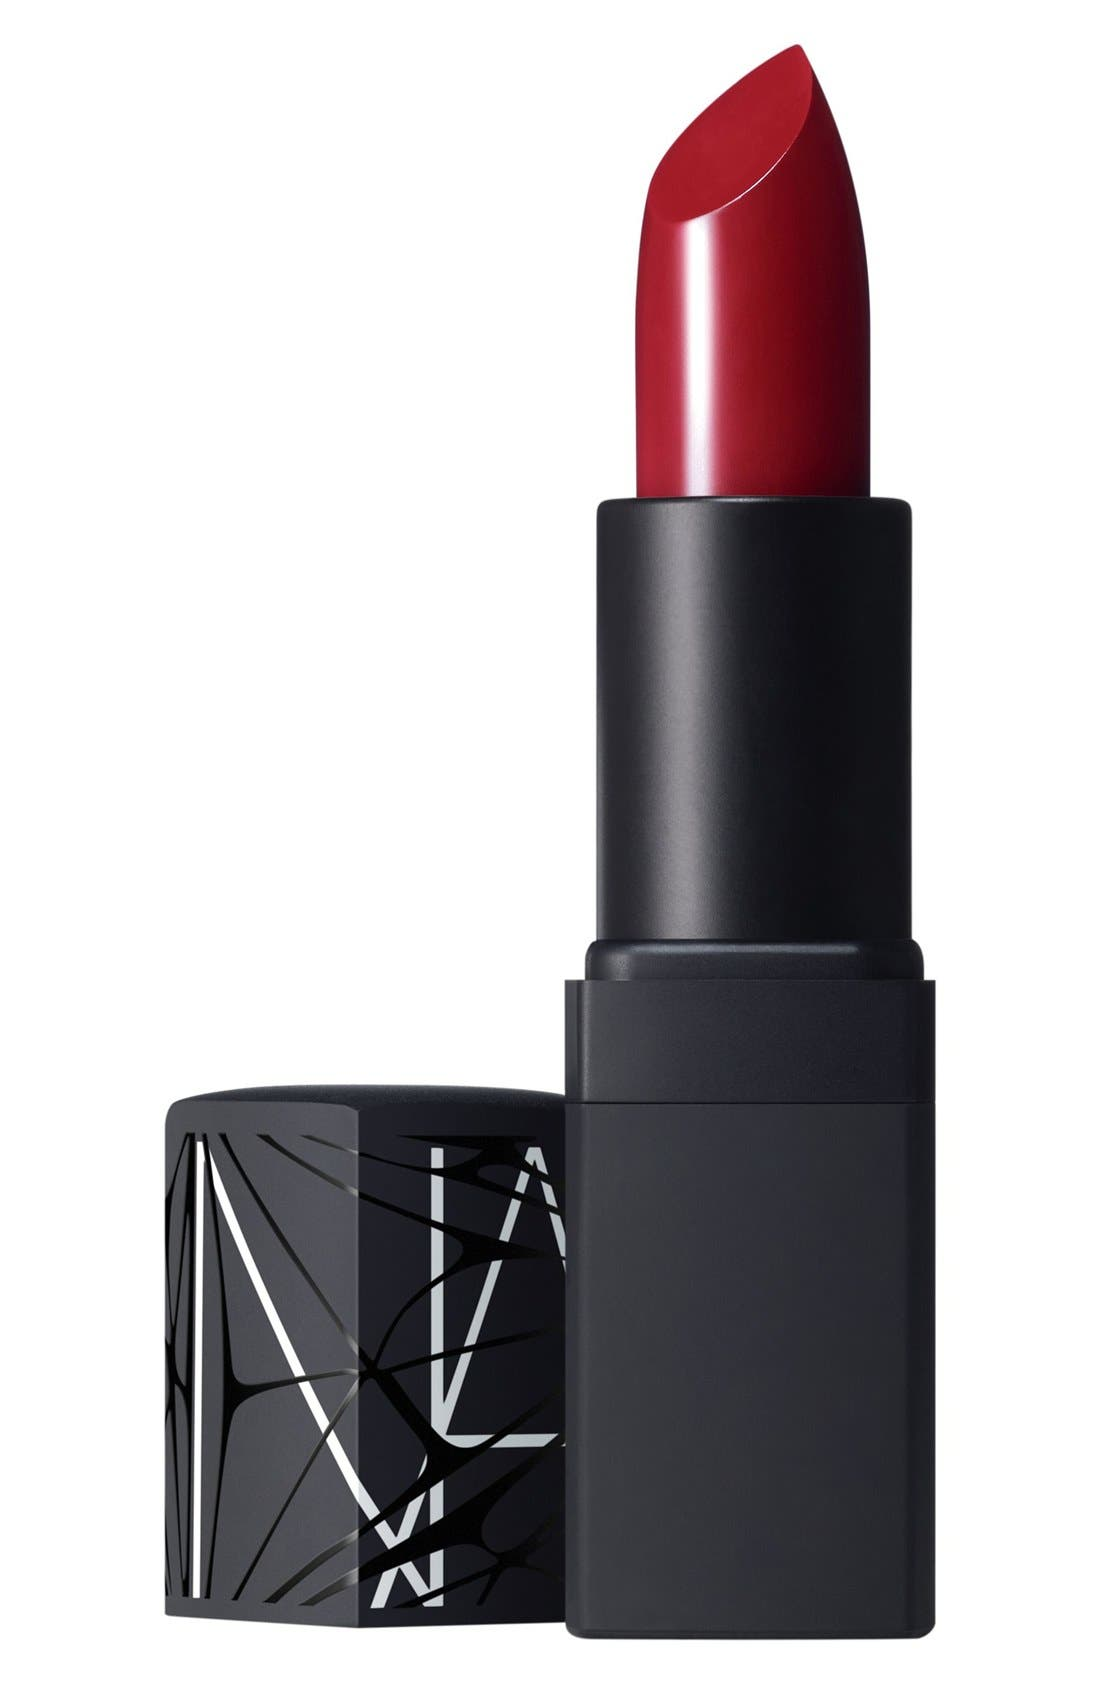 NARS 'Laced with Edge - Hardwired' Lipstick (Limited Edition)